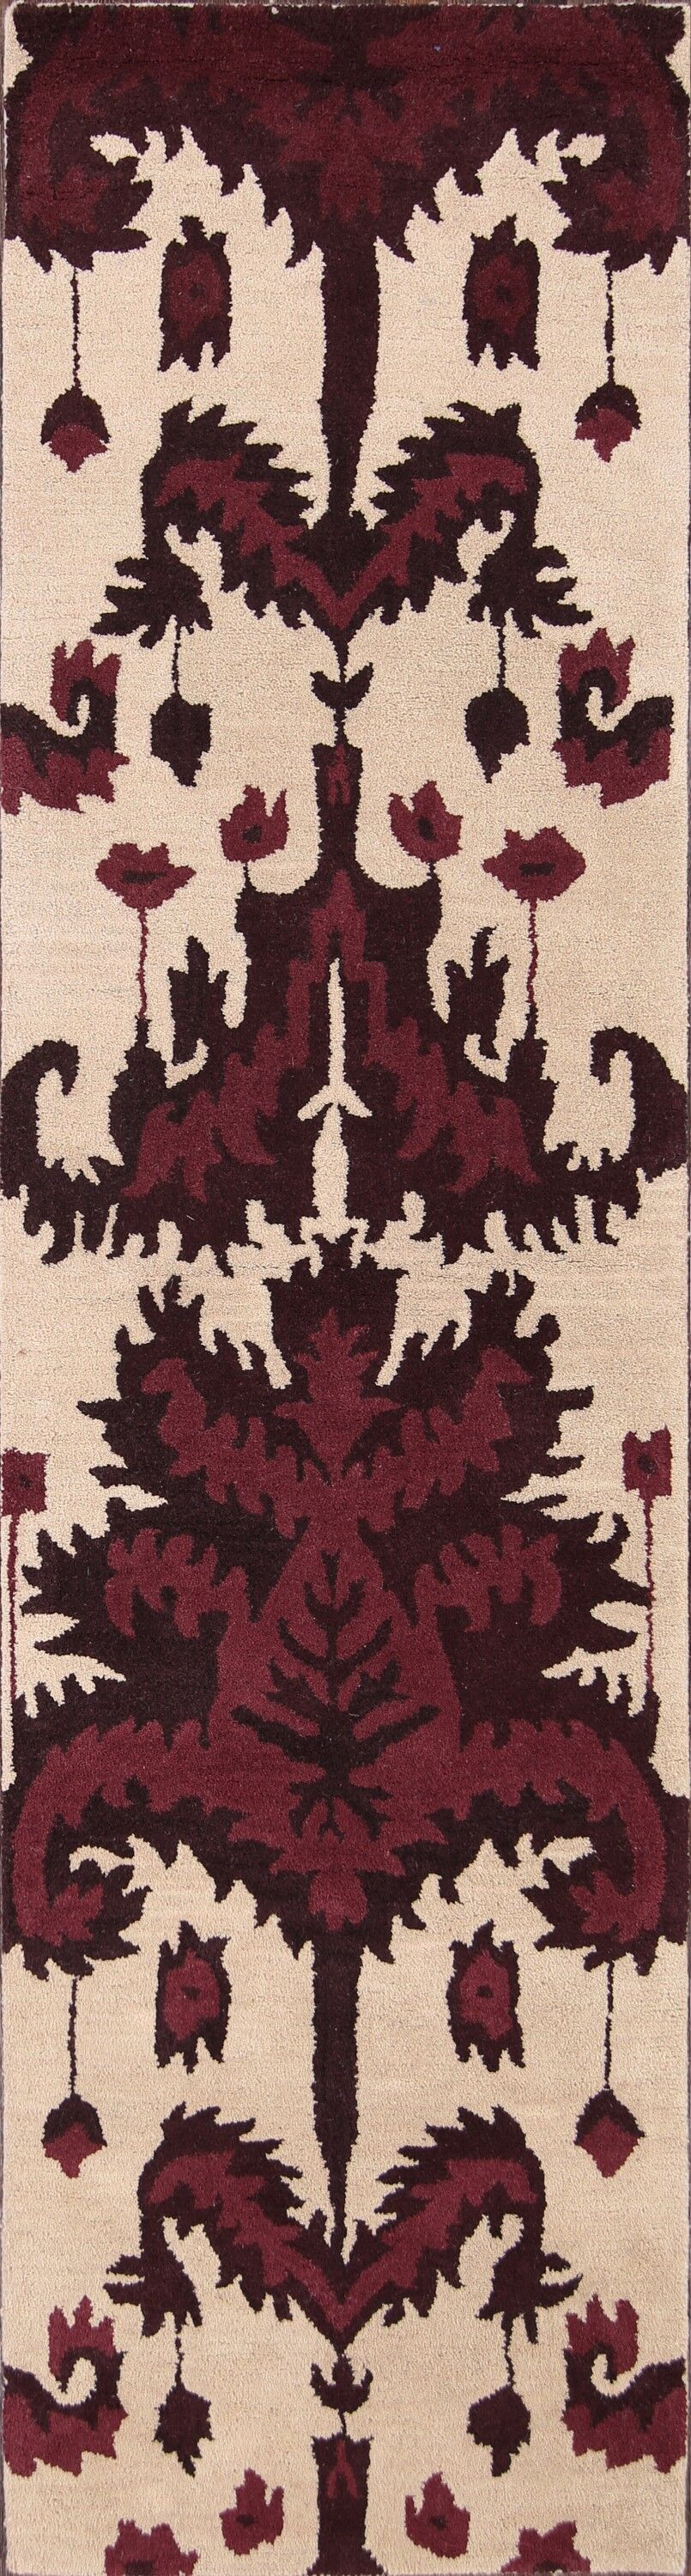 Bovill Agra Oriental Hand-Tufted Wool Red/Beige Area Rug